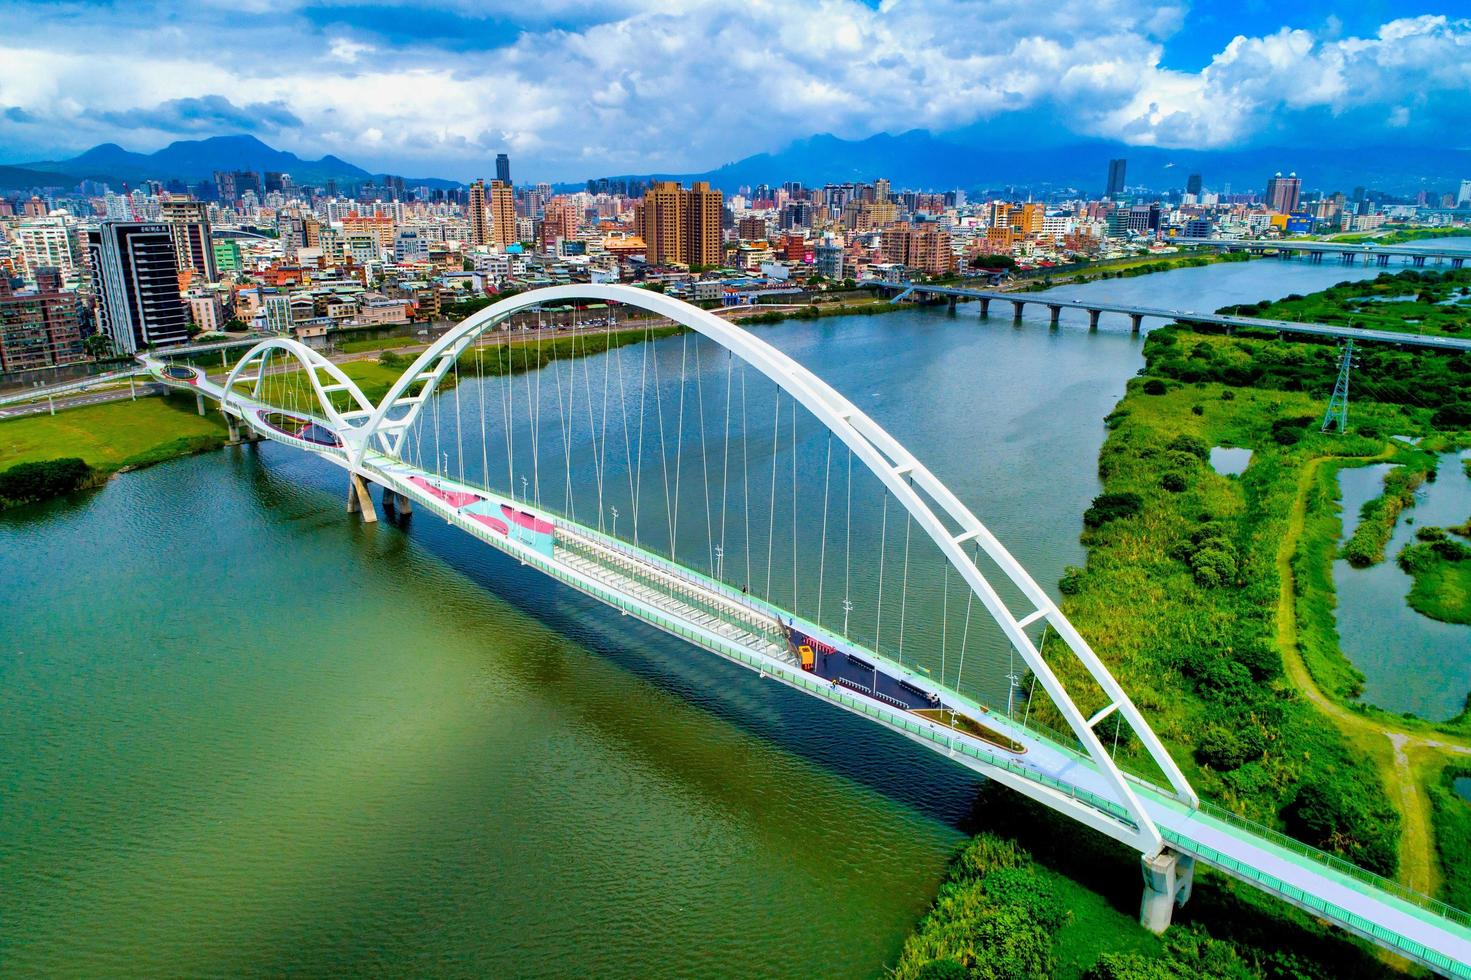 New Taipei City, Taiwan, July 11, 2018 - Aerial view of a bridge photo